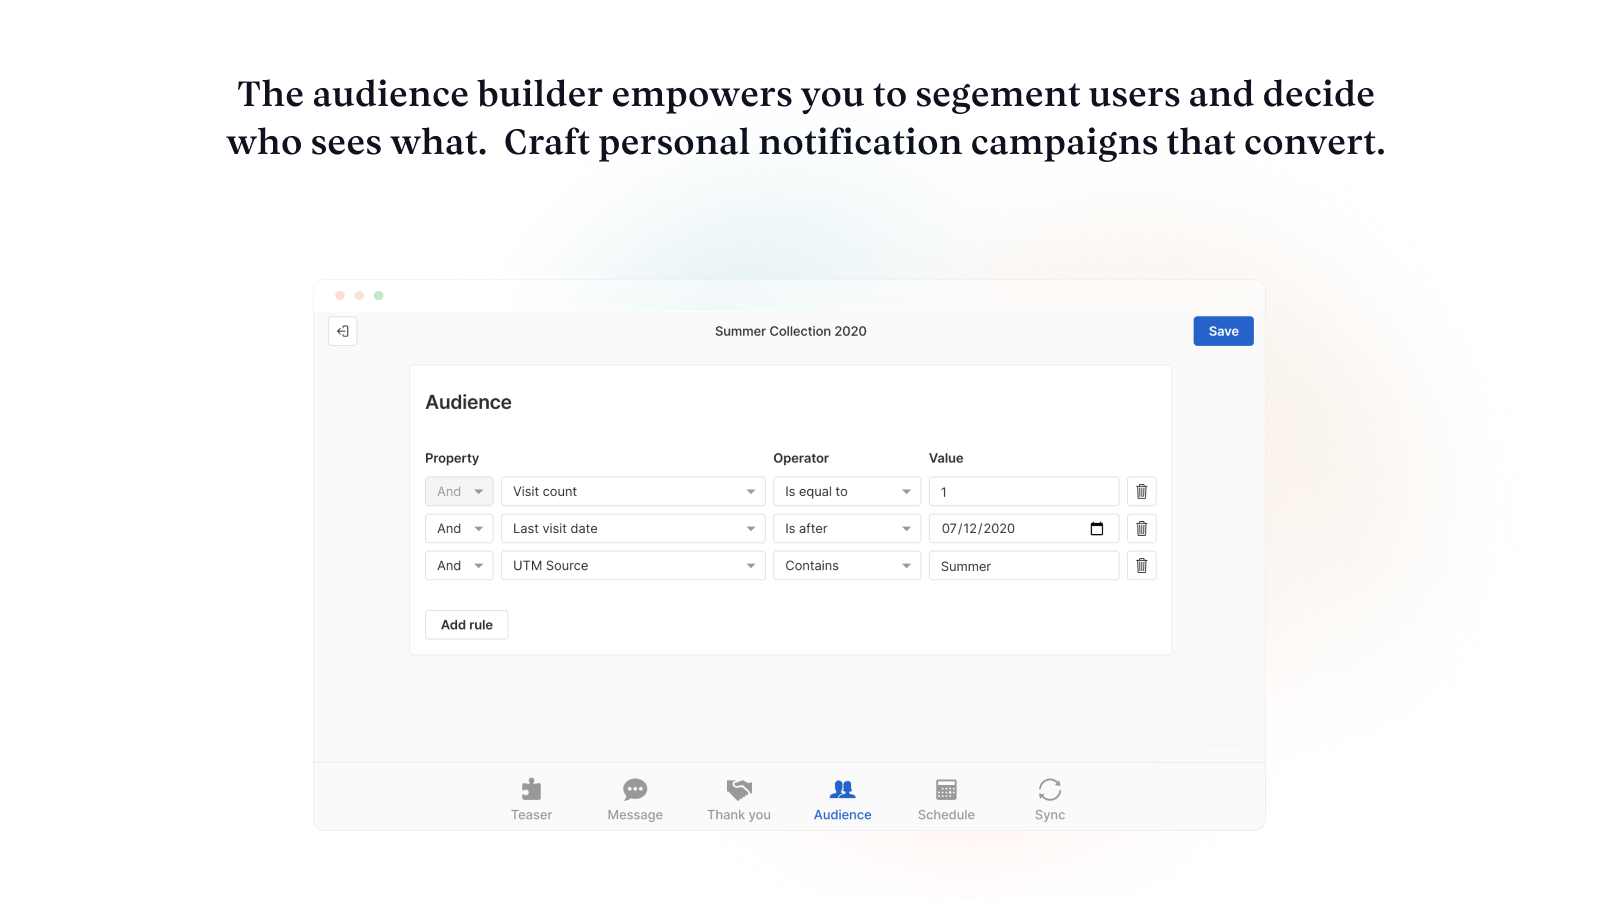 Target segments of your visitors with personalized messages.